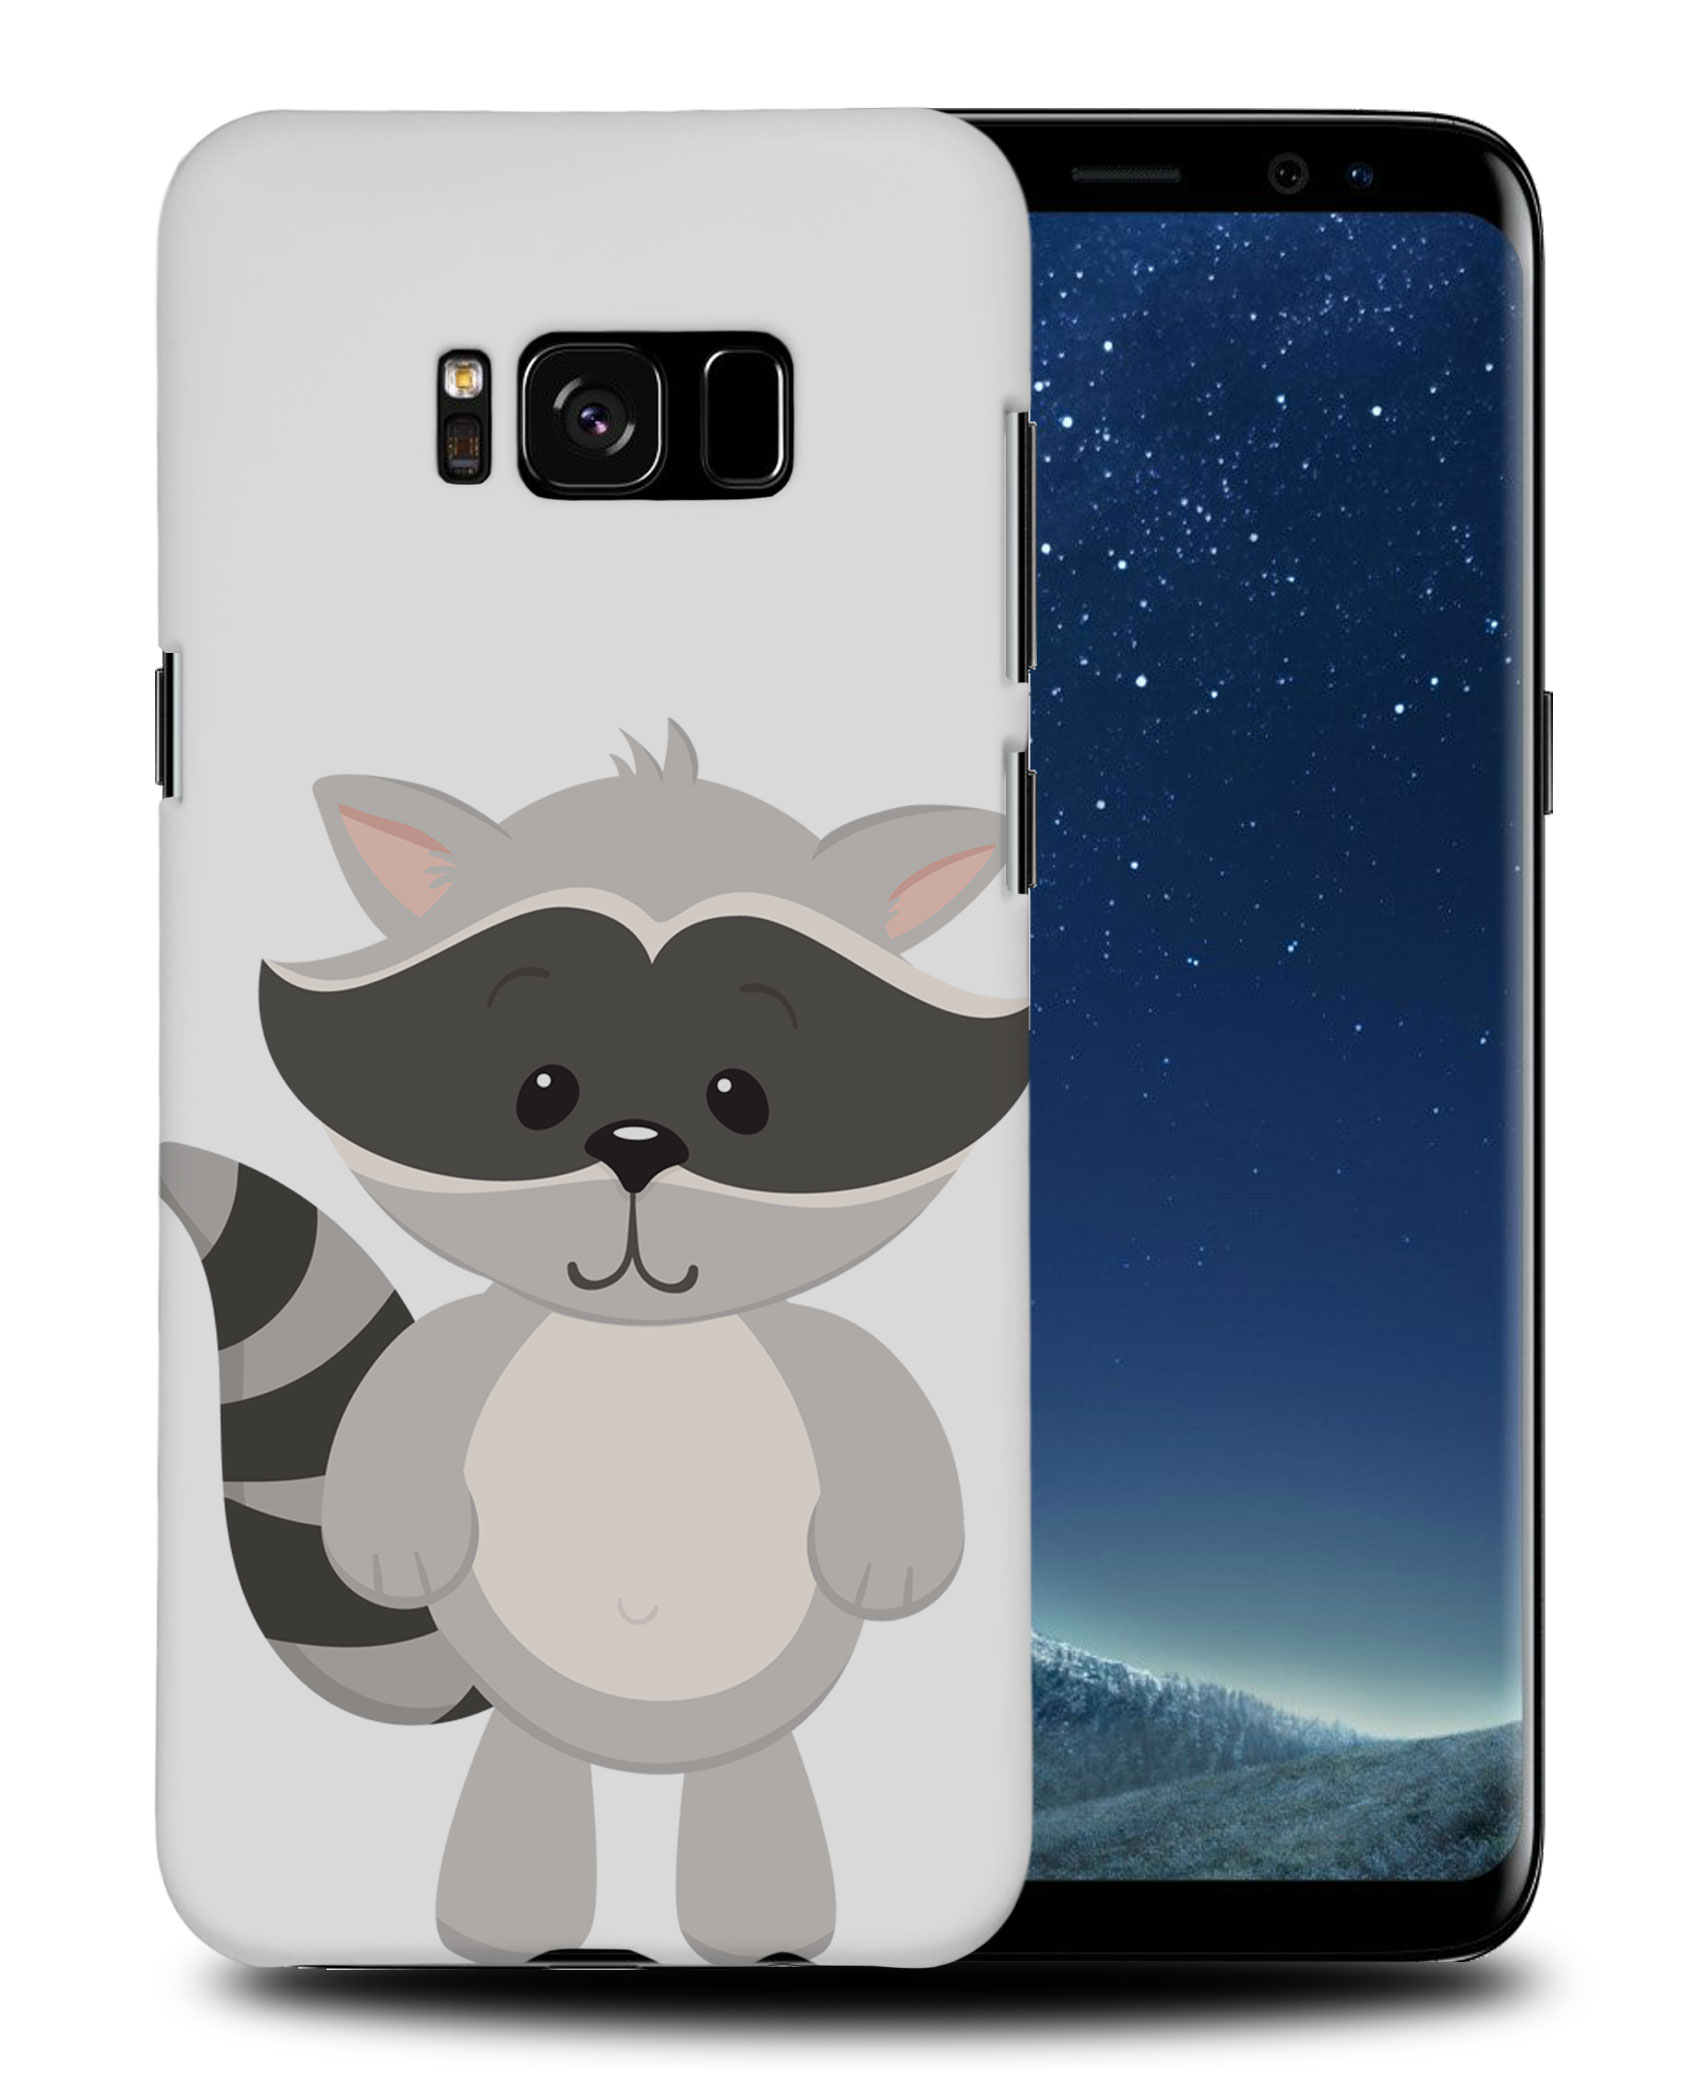 CUTE-OWL-1-CASE-SAMSUNG-GALAXY-S3-S4-S5-S6-S7-S8-S9-PLUS